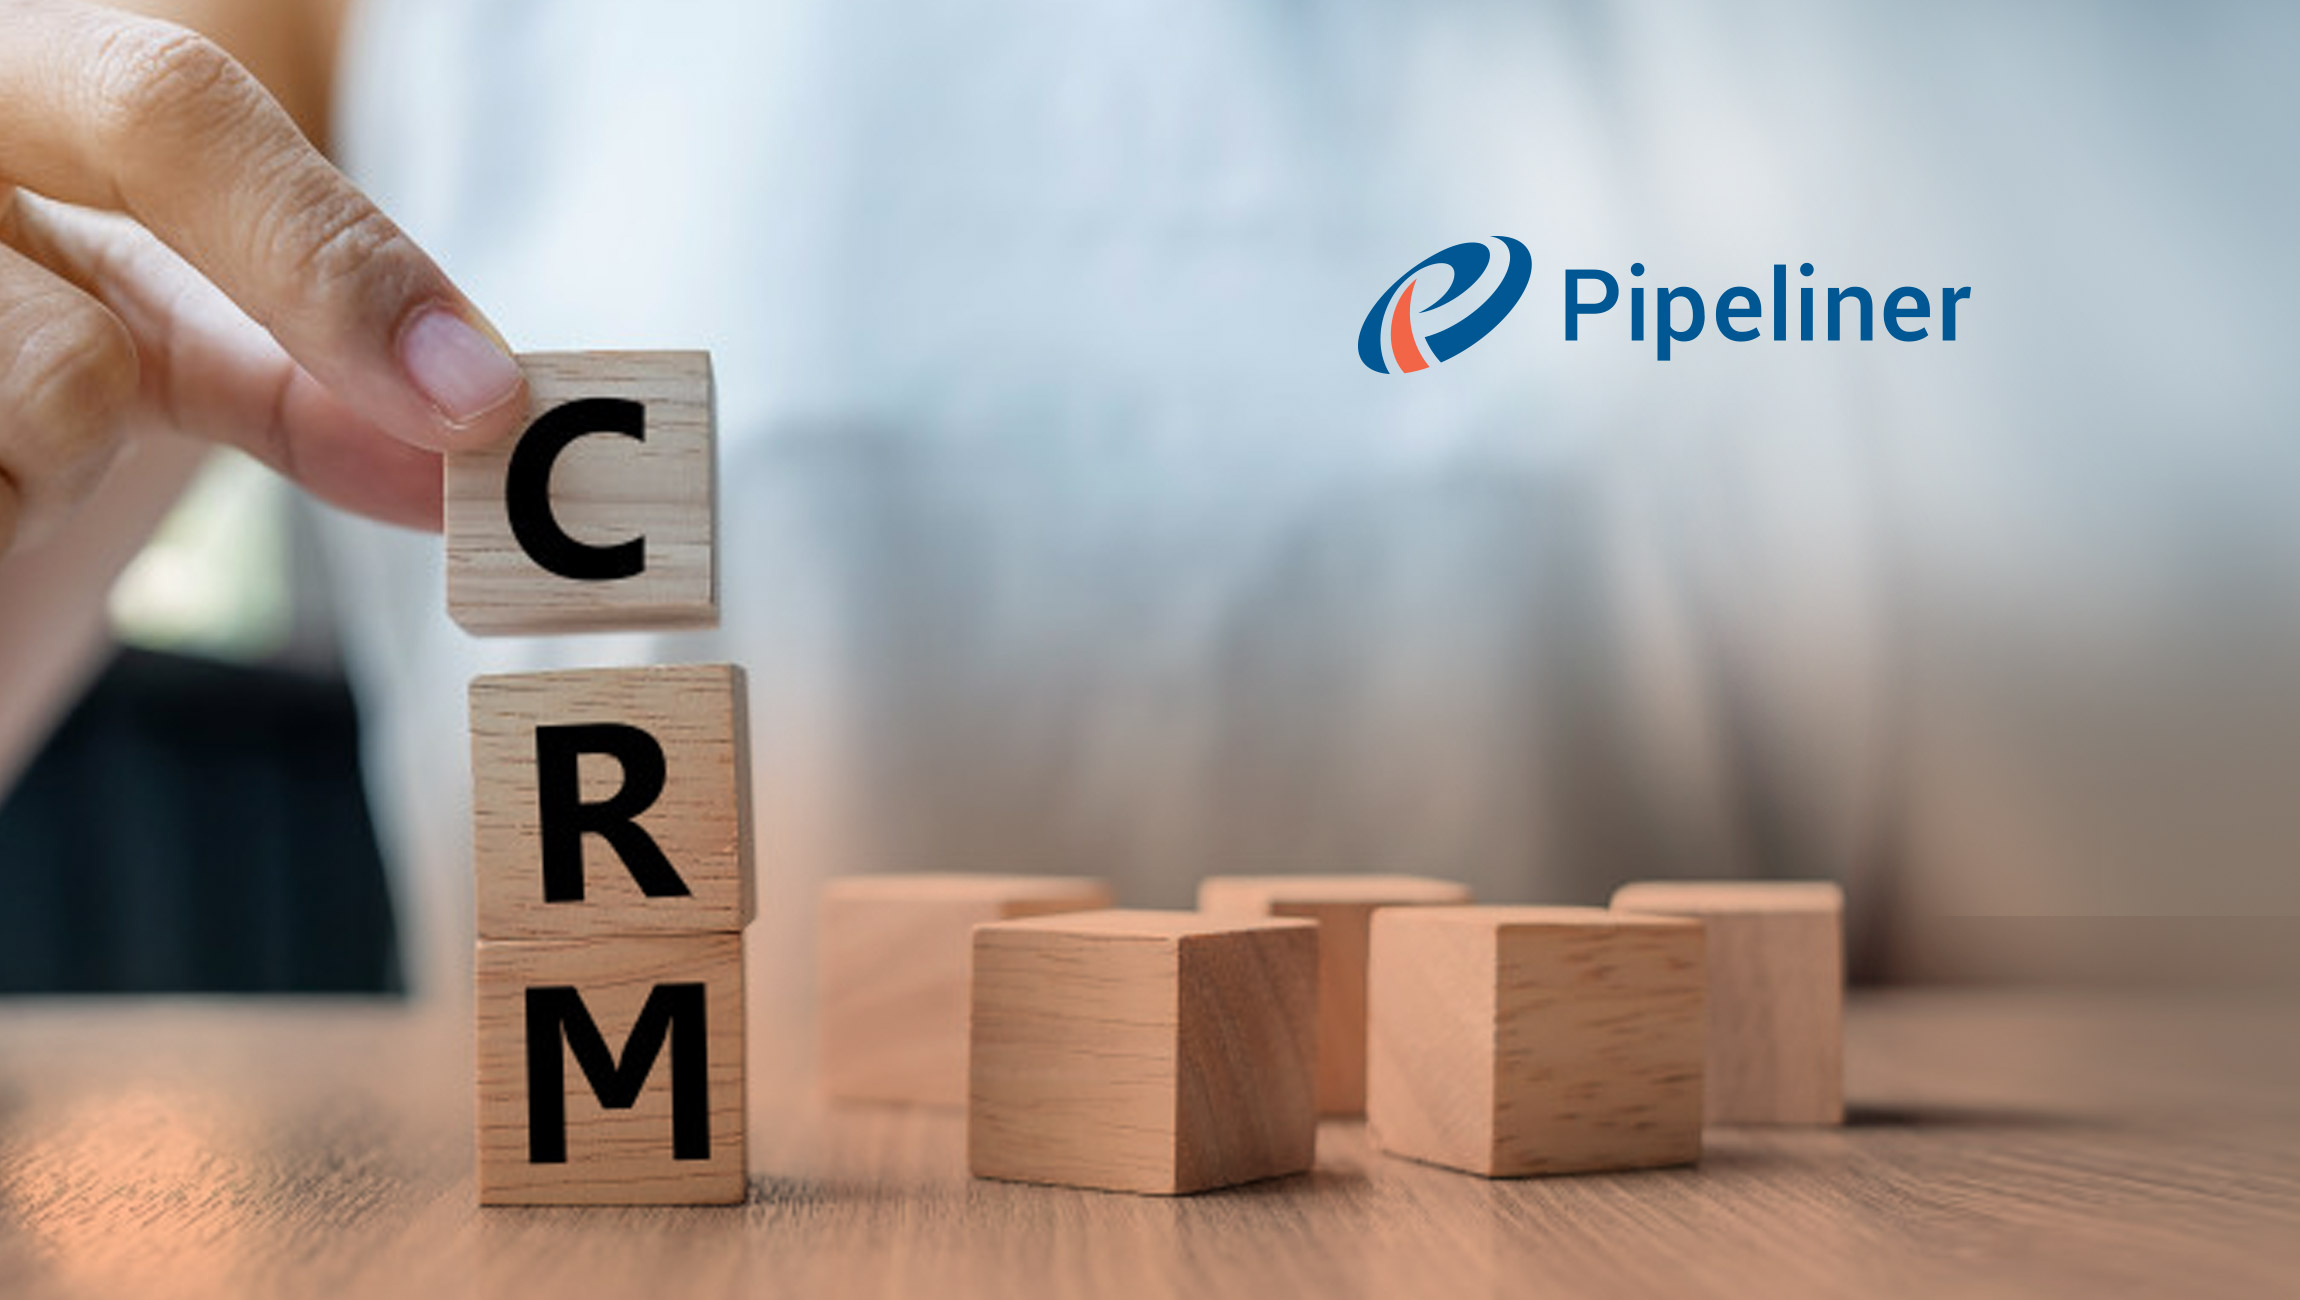 Pipeliner Releases Customizable Product and Price List Enhancements